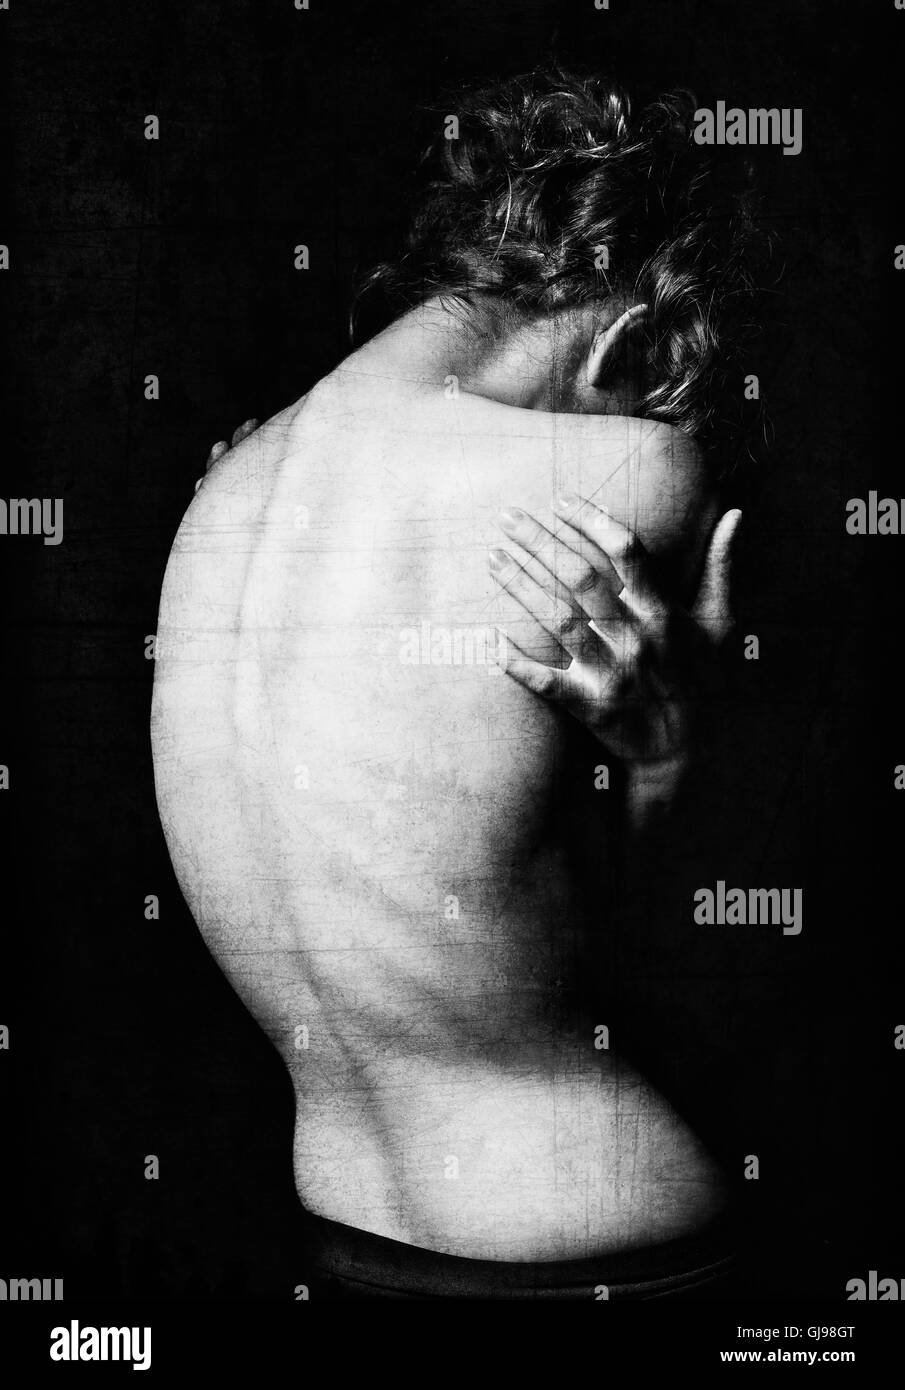 Spooky portrait of a young woman among the dark. Grunge texture effect. Black and white, rear view - Stock Image